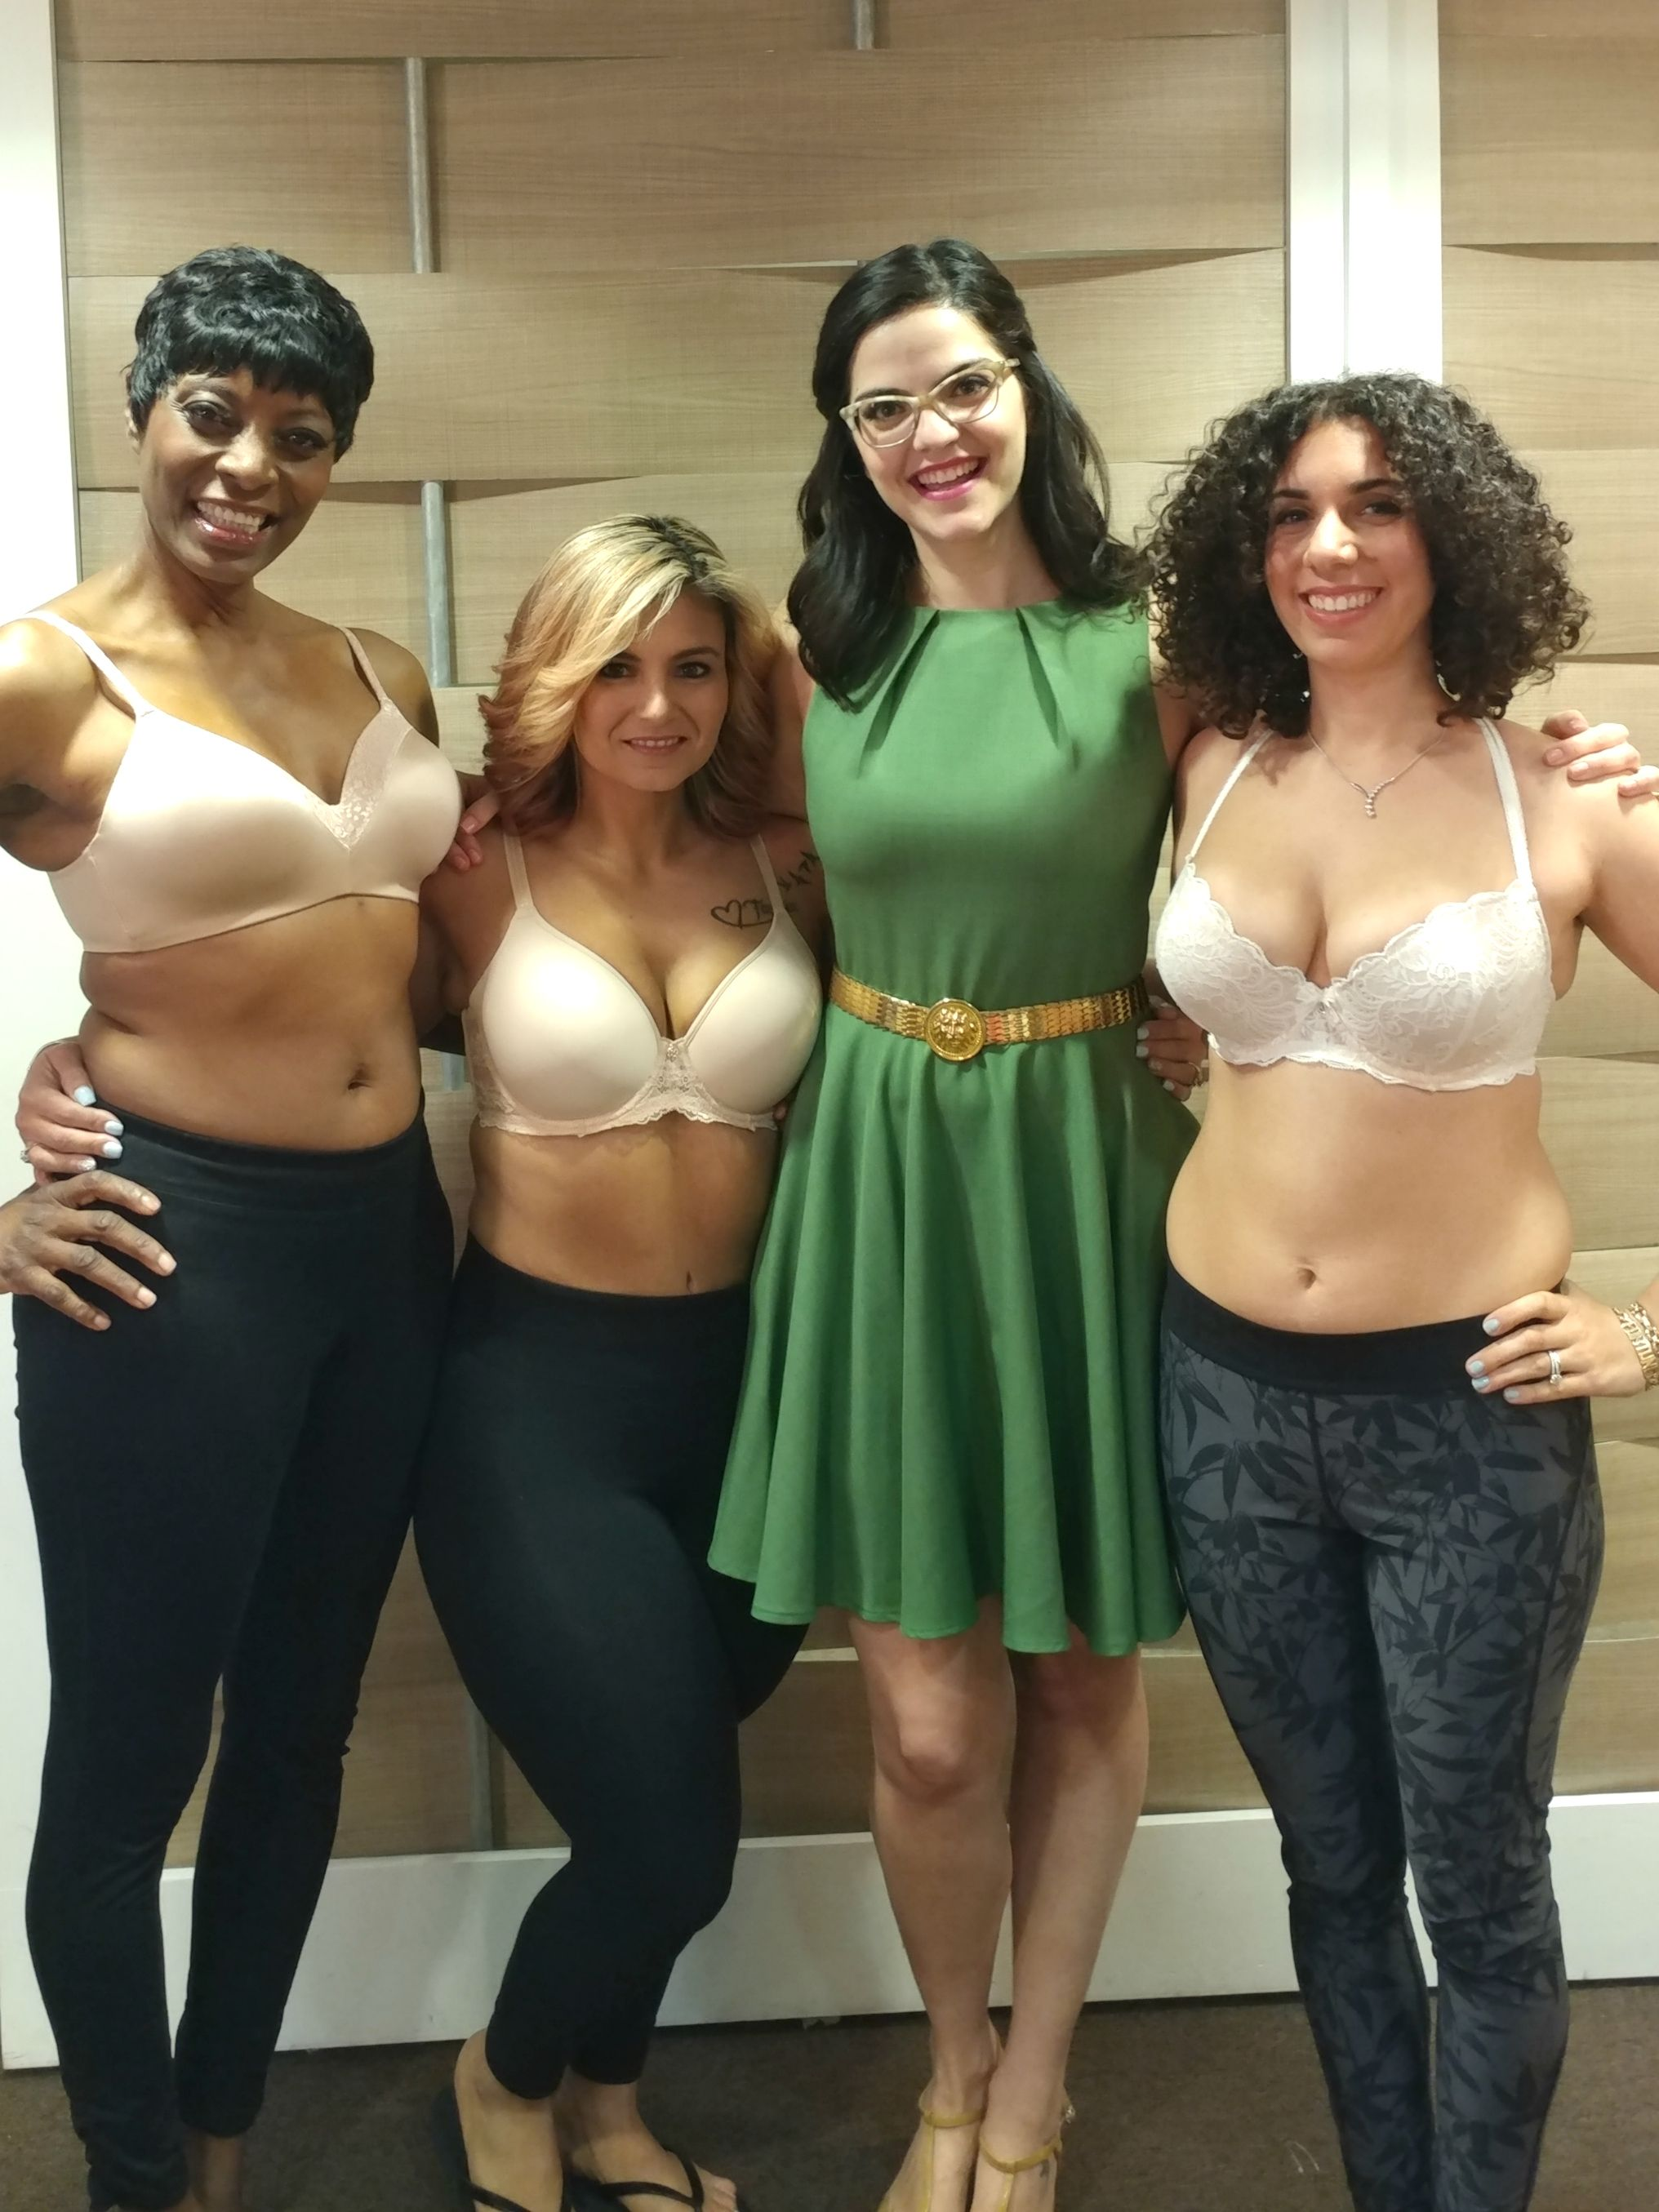 b9edebb82f Kimmay from Hurray Kimmay helped these three woman to find their perfect bra  with LeMystere on The Rachael Ray Show!